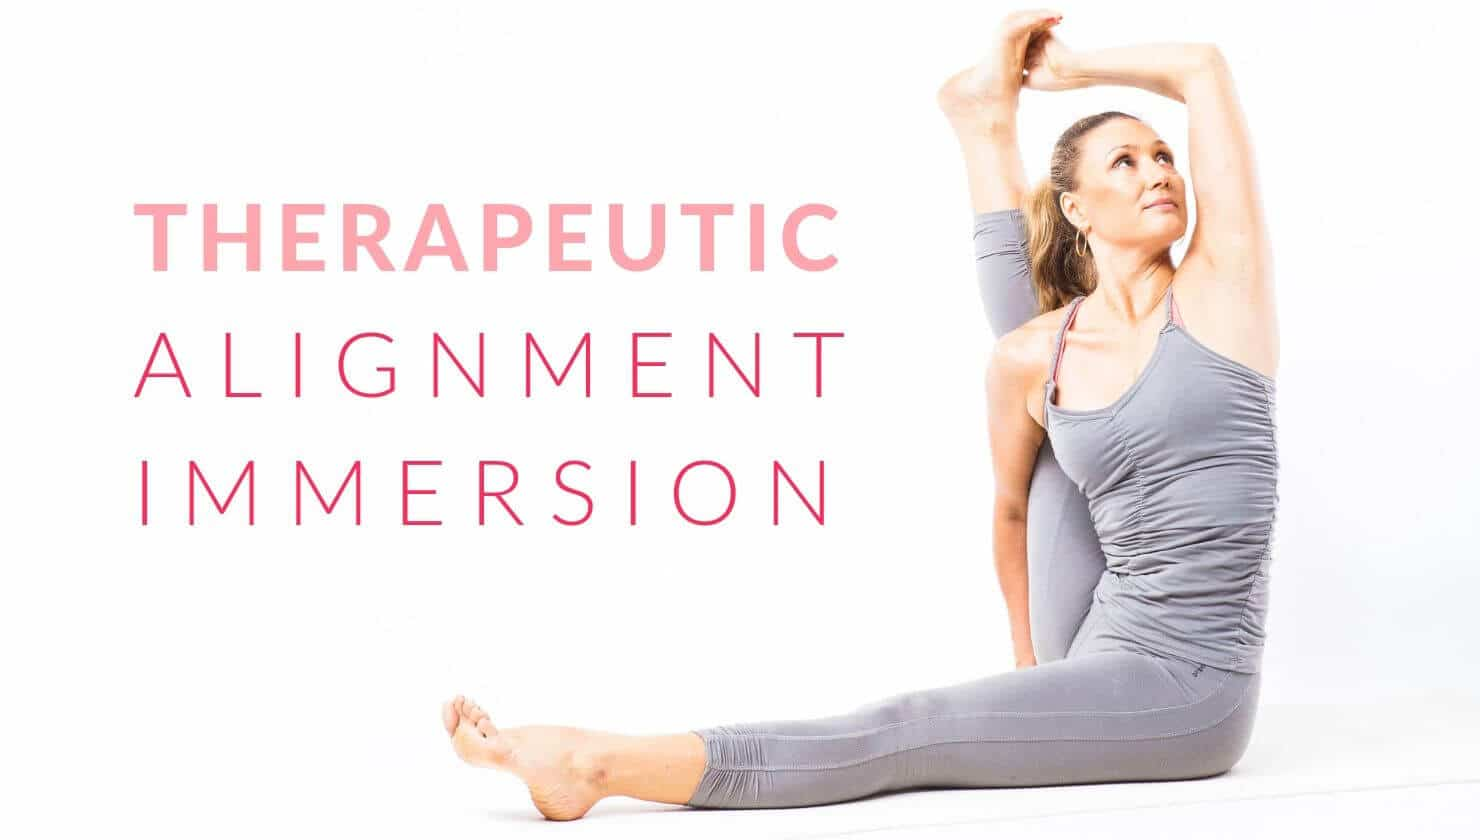 Therapeutic Alignment Immersion with Barbra Noh